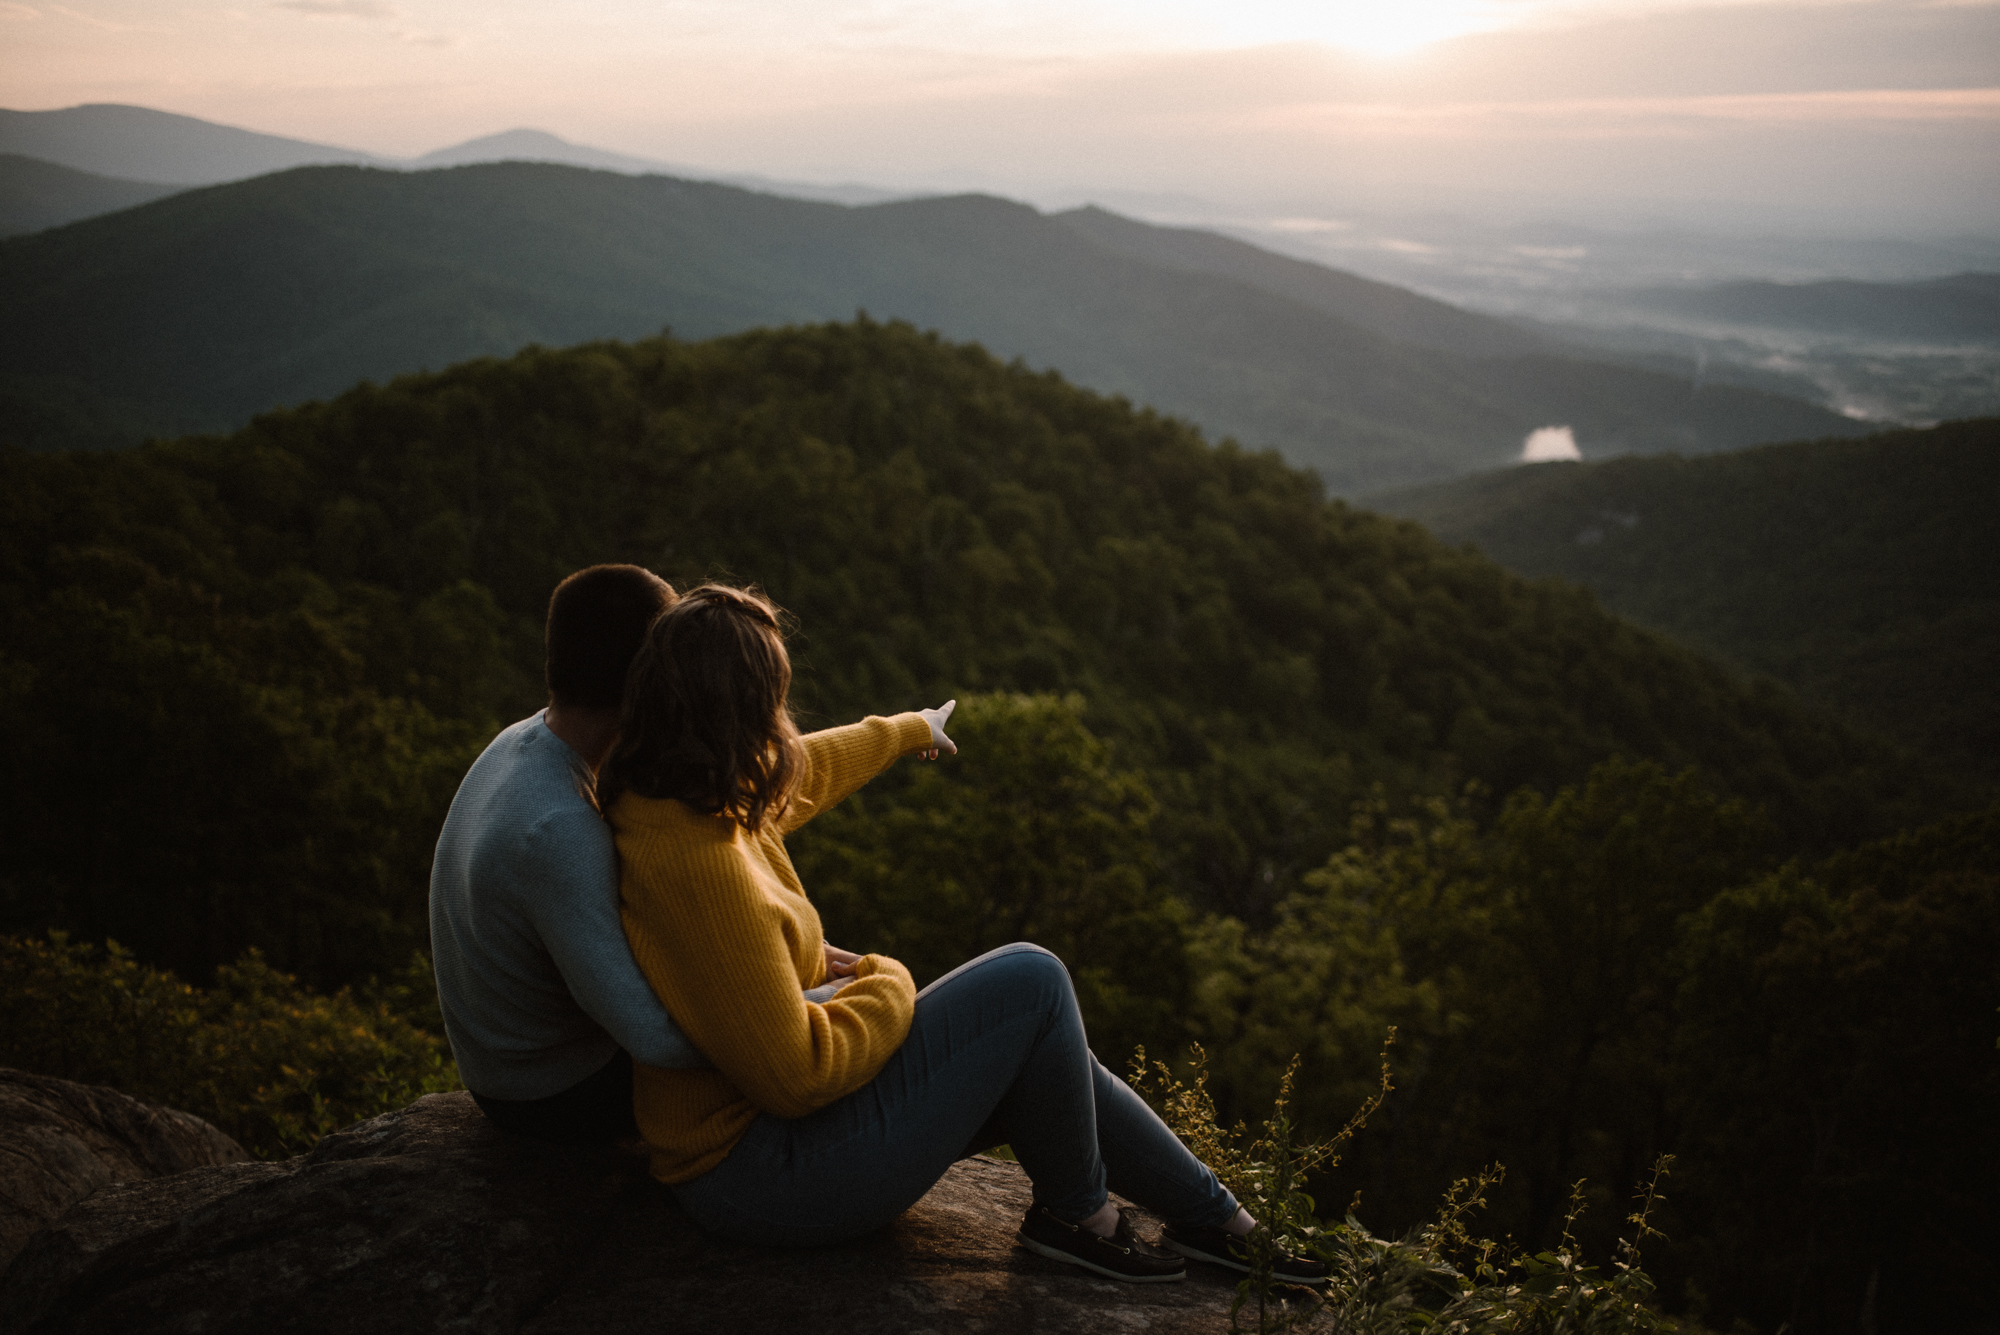 Sloane and Evan Sunrise Engagement Session in Shenandoah National Park - Things to Do in Luray Virginia - Adventurous Couple Photo Shoot White Sails Creative_12.jpg